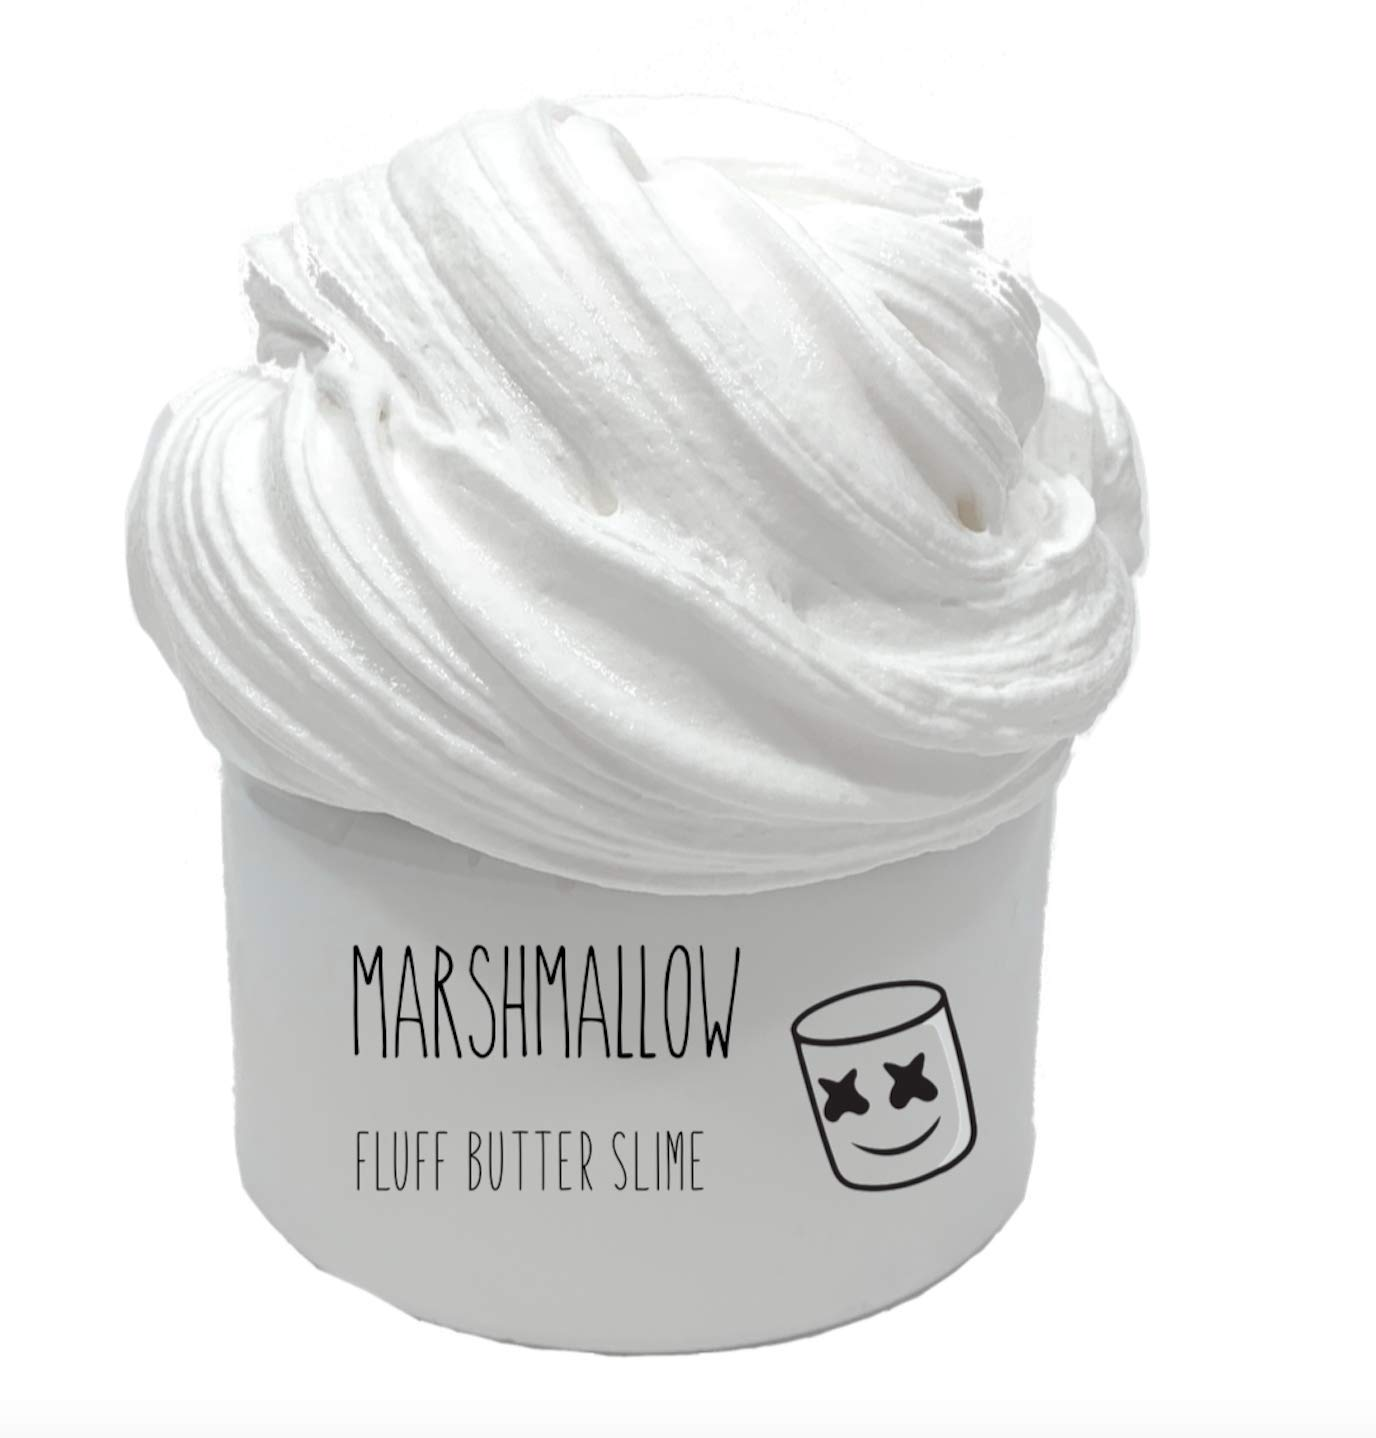 FREE SHIPPING! 8oz Marshmallow Fluff Butter Slime